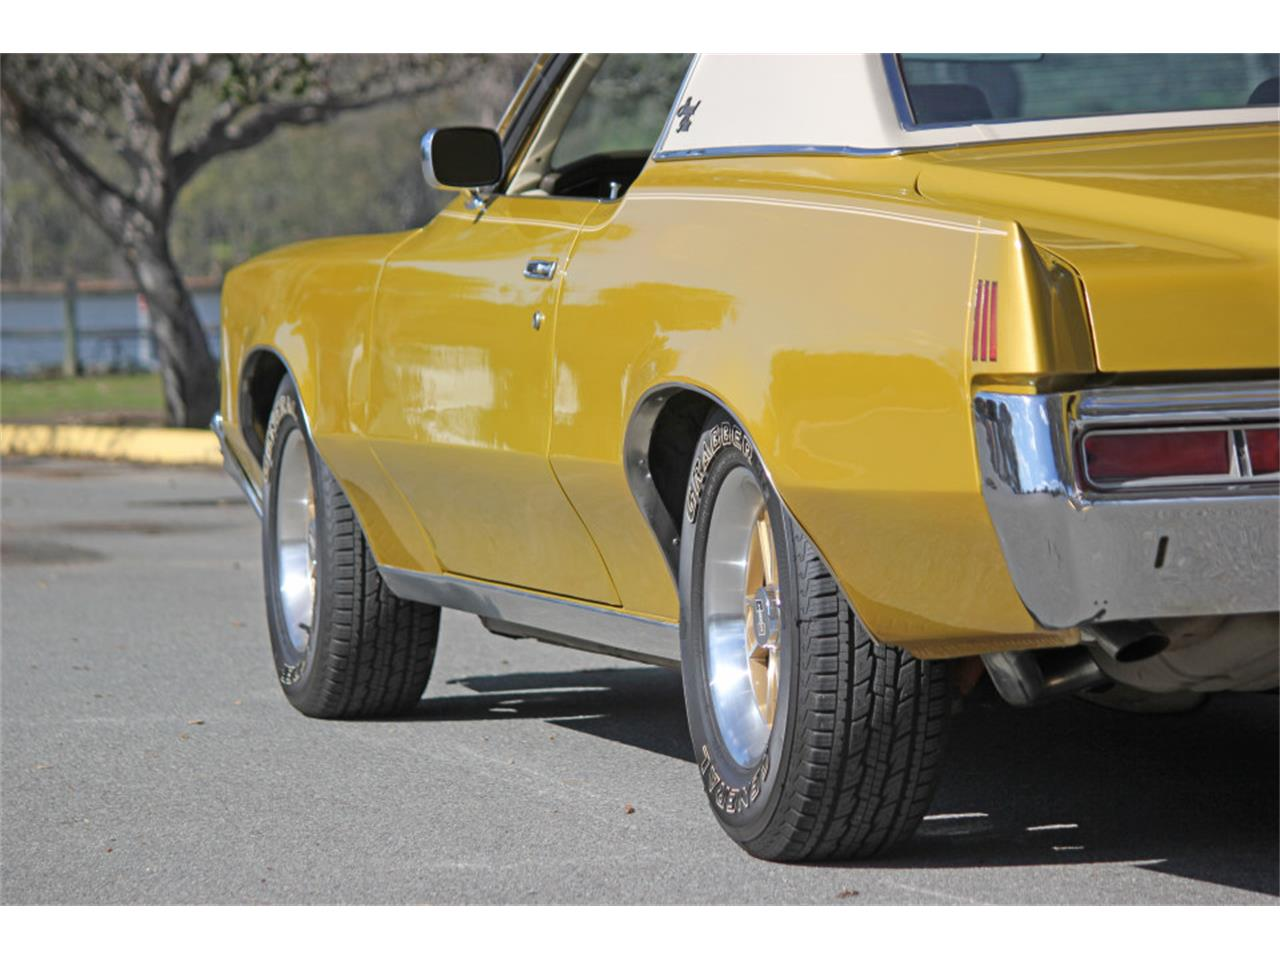 Large Picture of Classic '72 Pontiac Grand Prix located in SAN DIEGO  California - $20,900.00 - PGU5